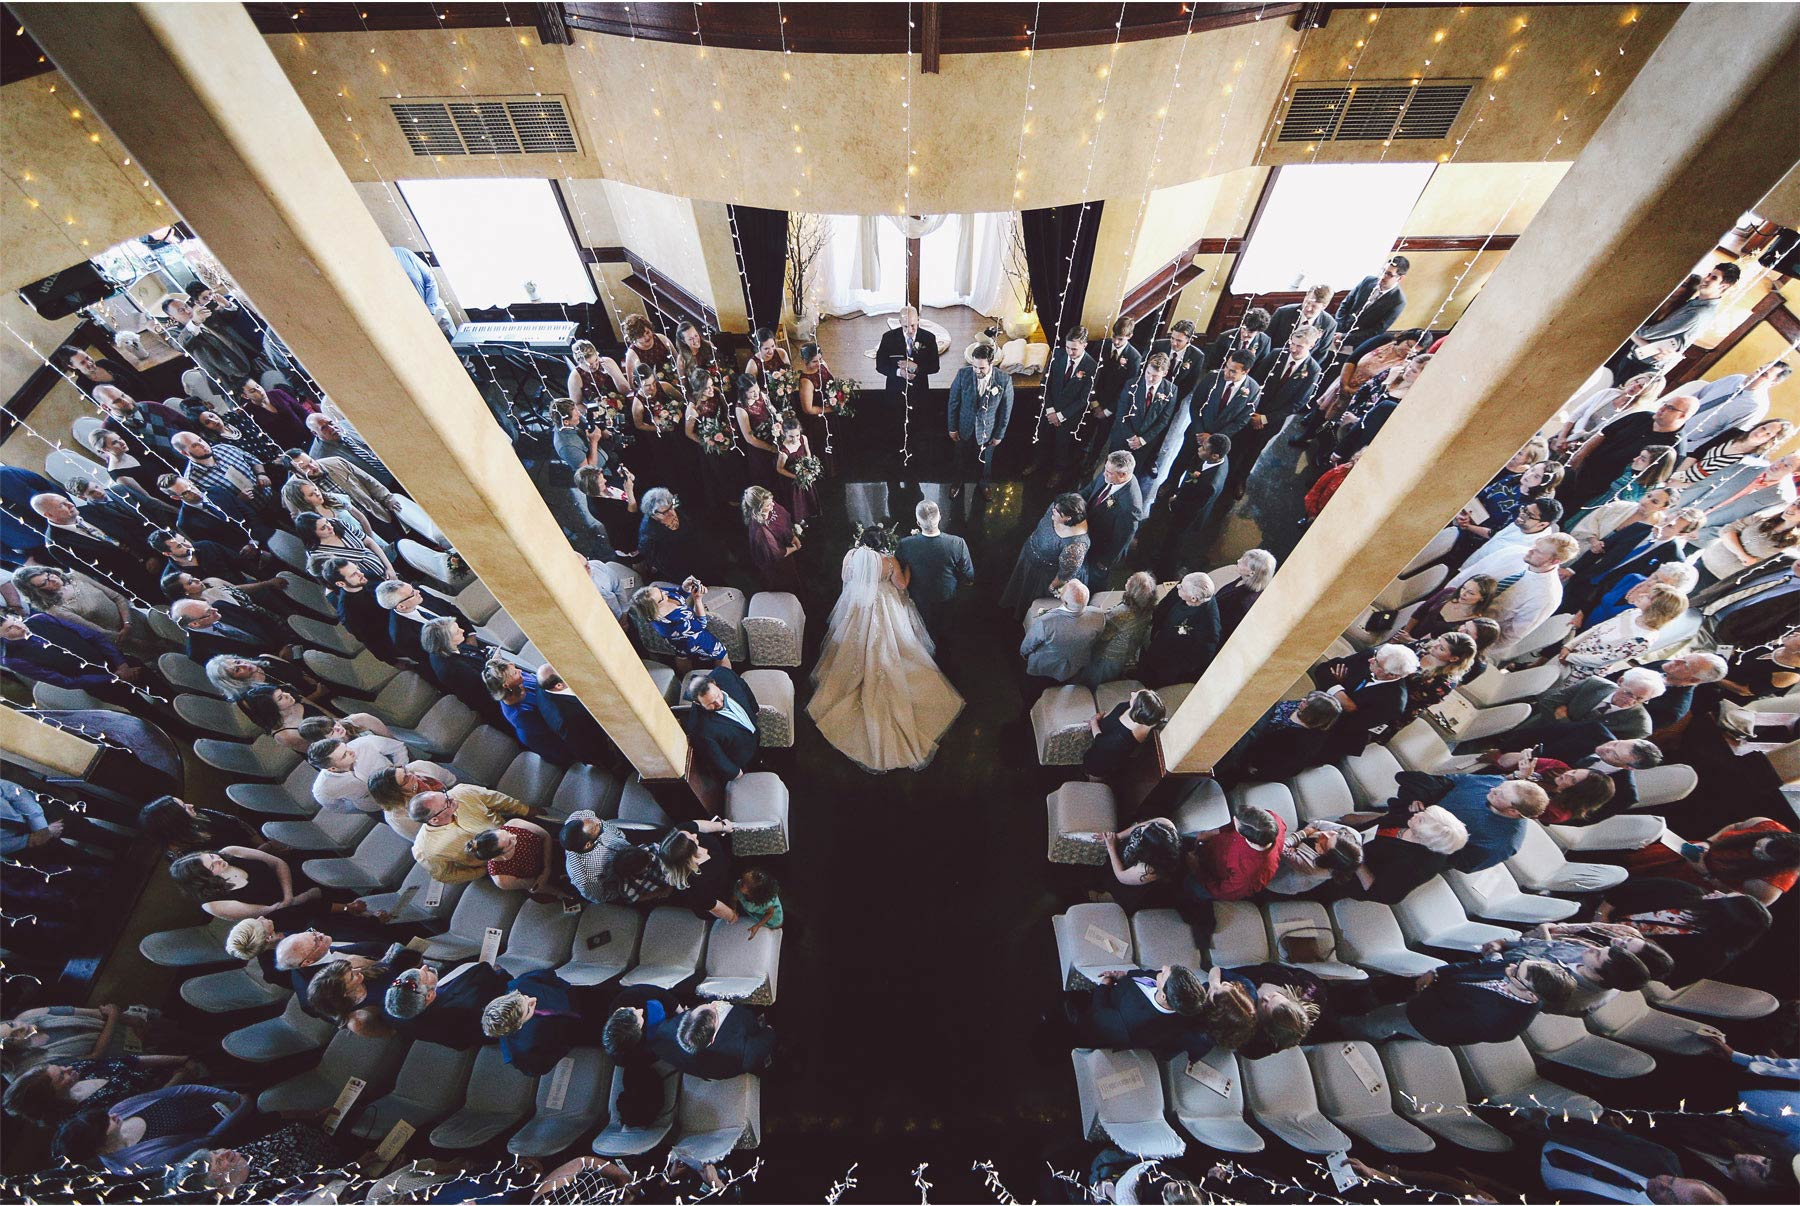 11-Minneapolis-Wedding-Photography-by-Vick-Photography-Historic-Concord-Exchange-Ceremony-Arial-View-Rachael-and-Benjamin.jpg